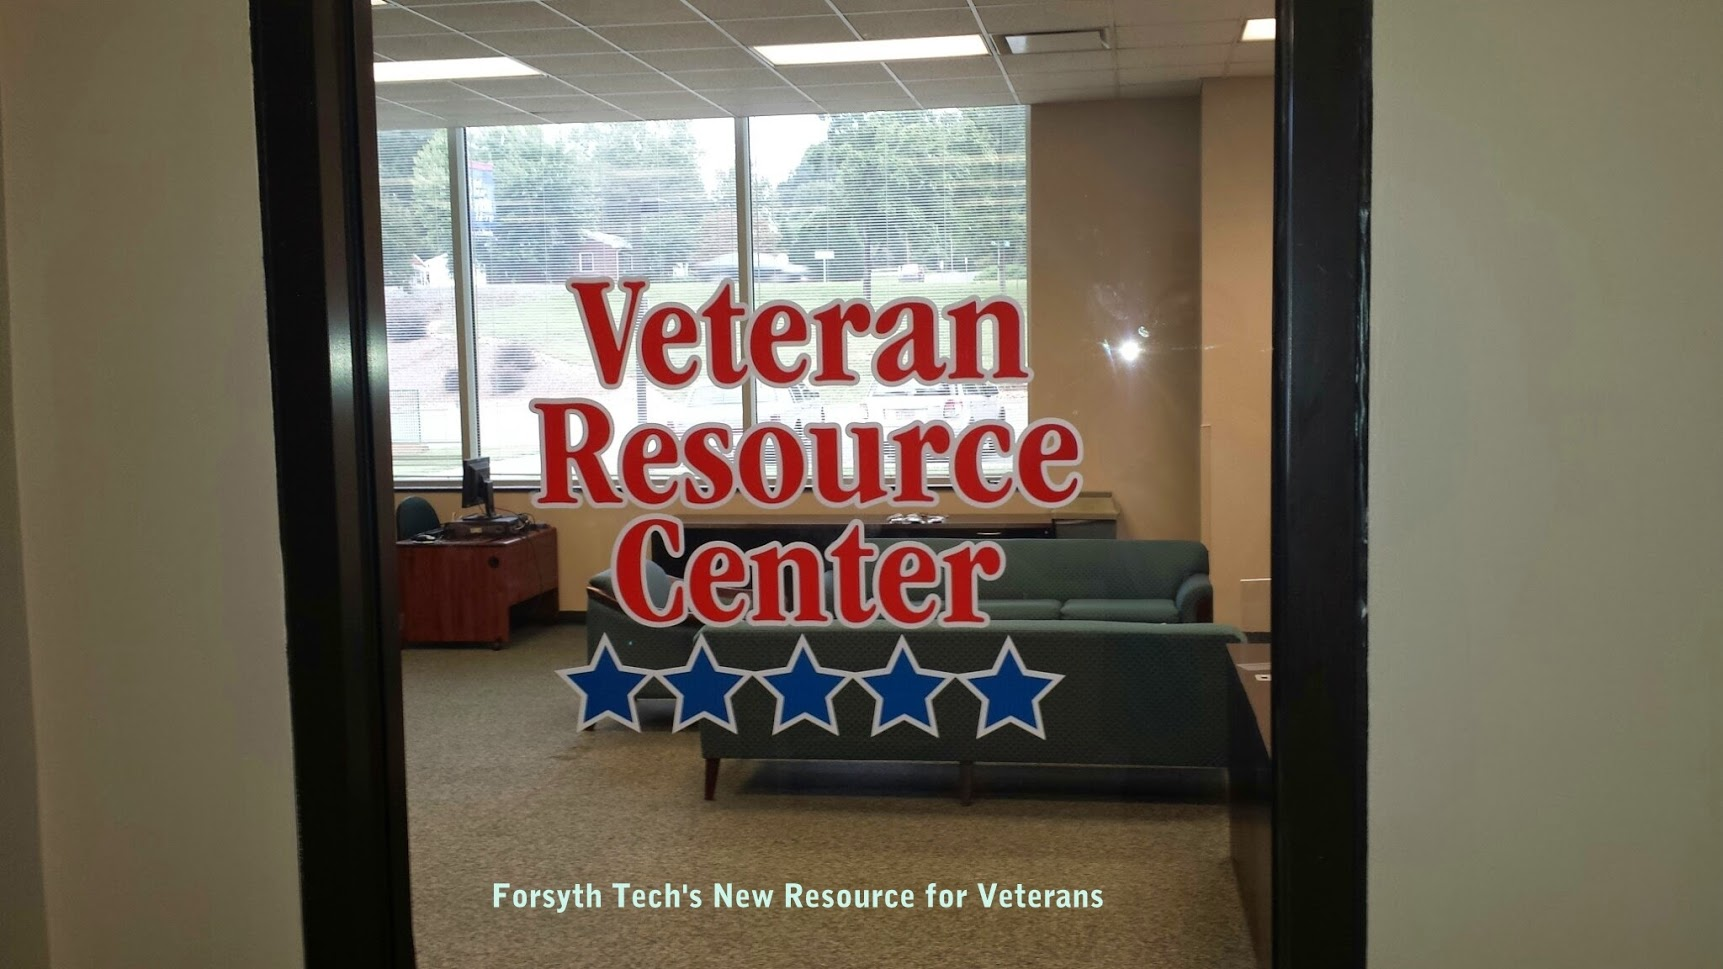 veteran resource center window door graphic display